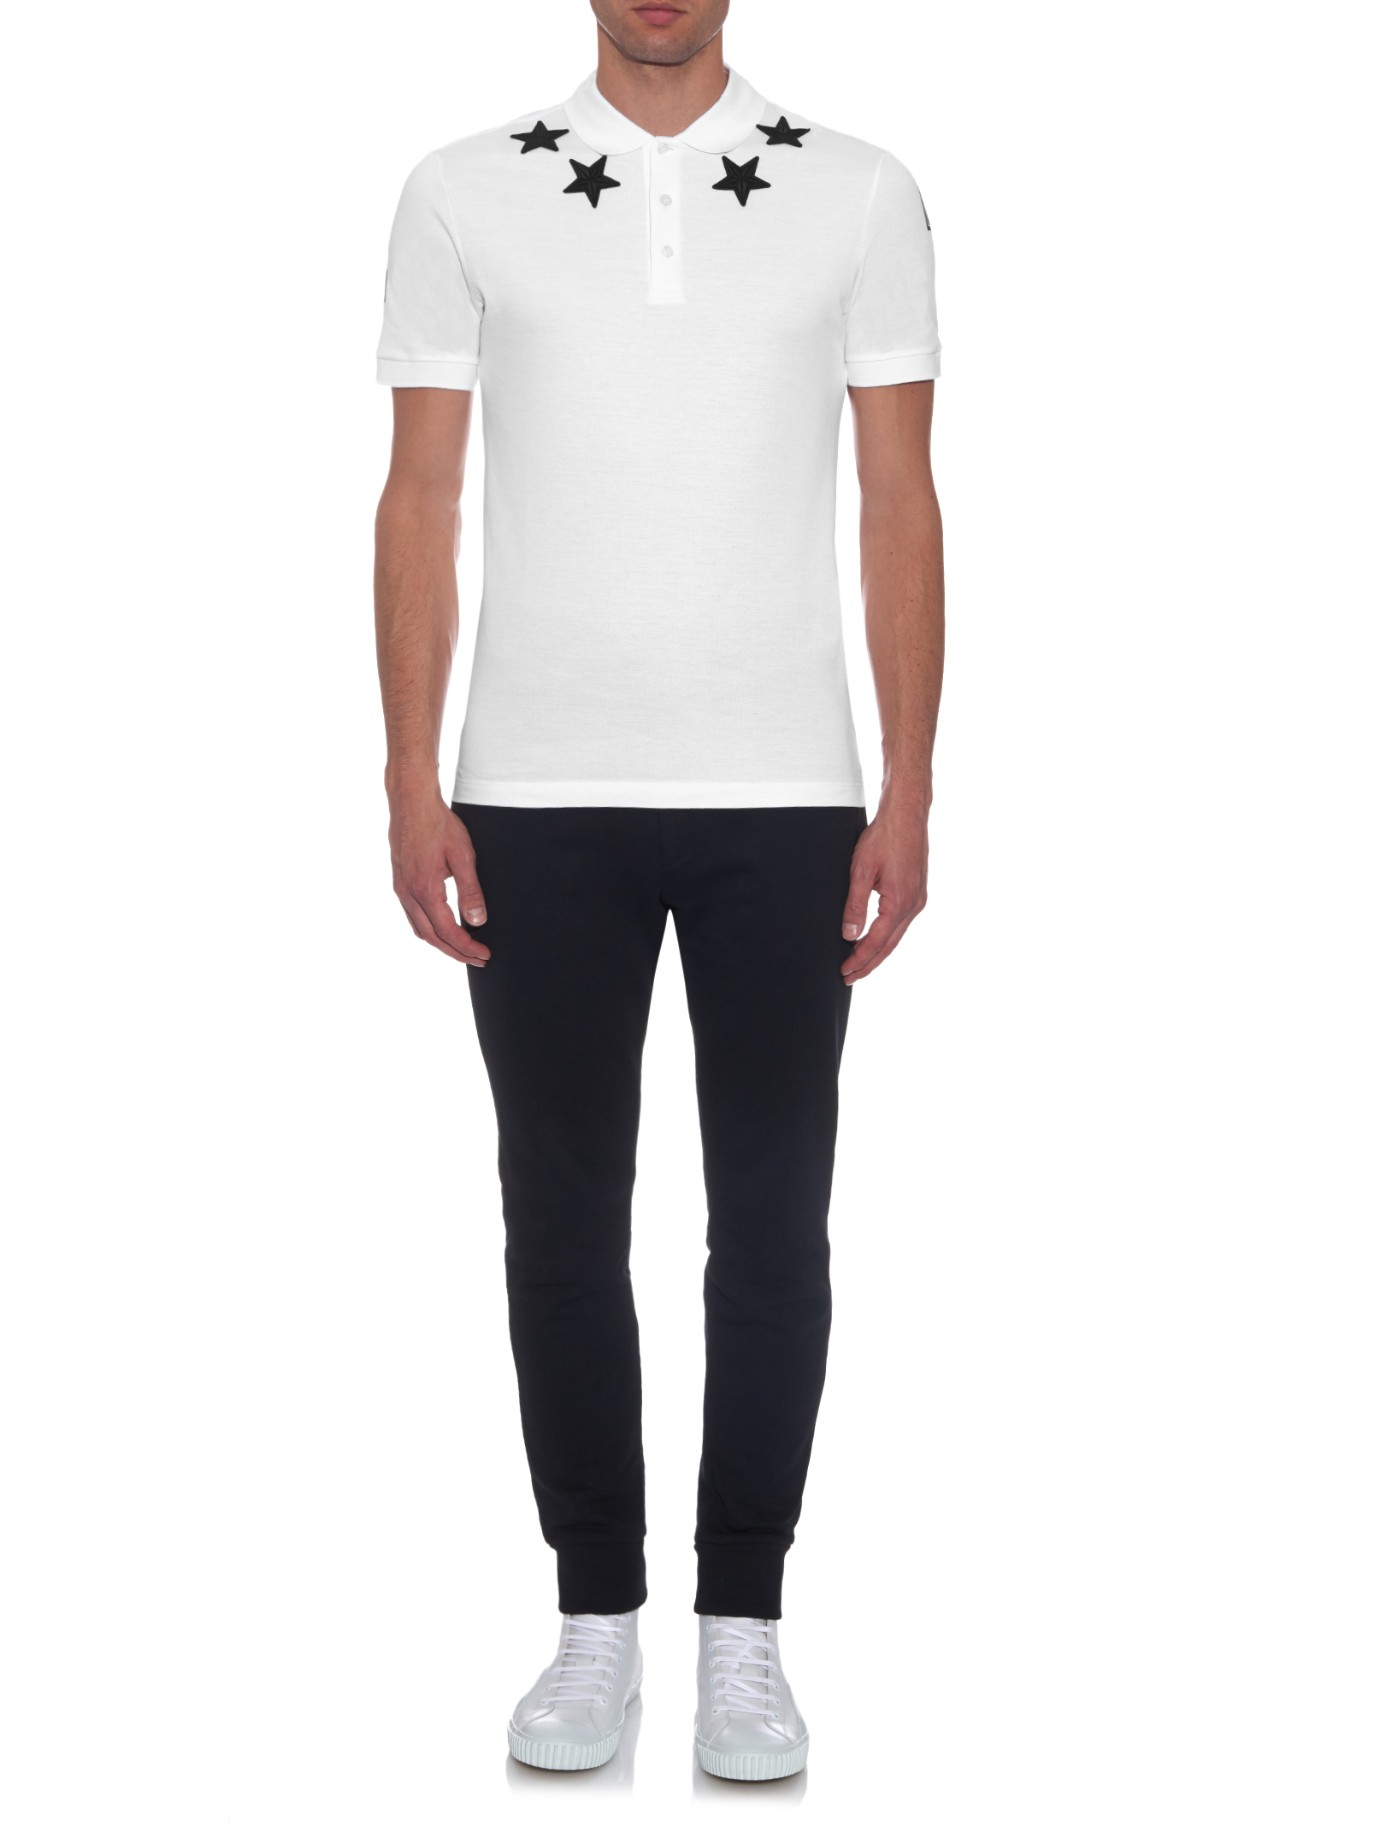 Givenchy Cuban Fit Star Patch Polo Shirt In White For Men